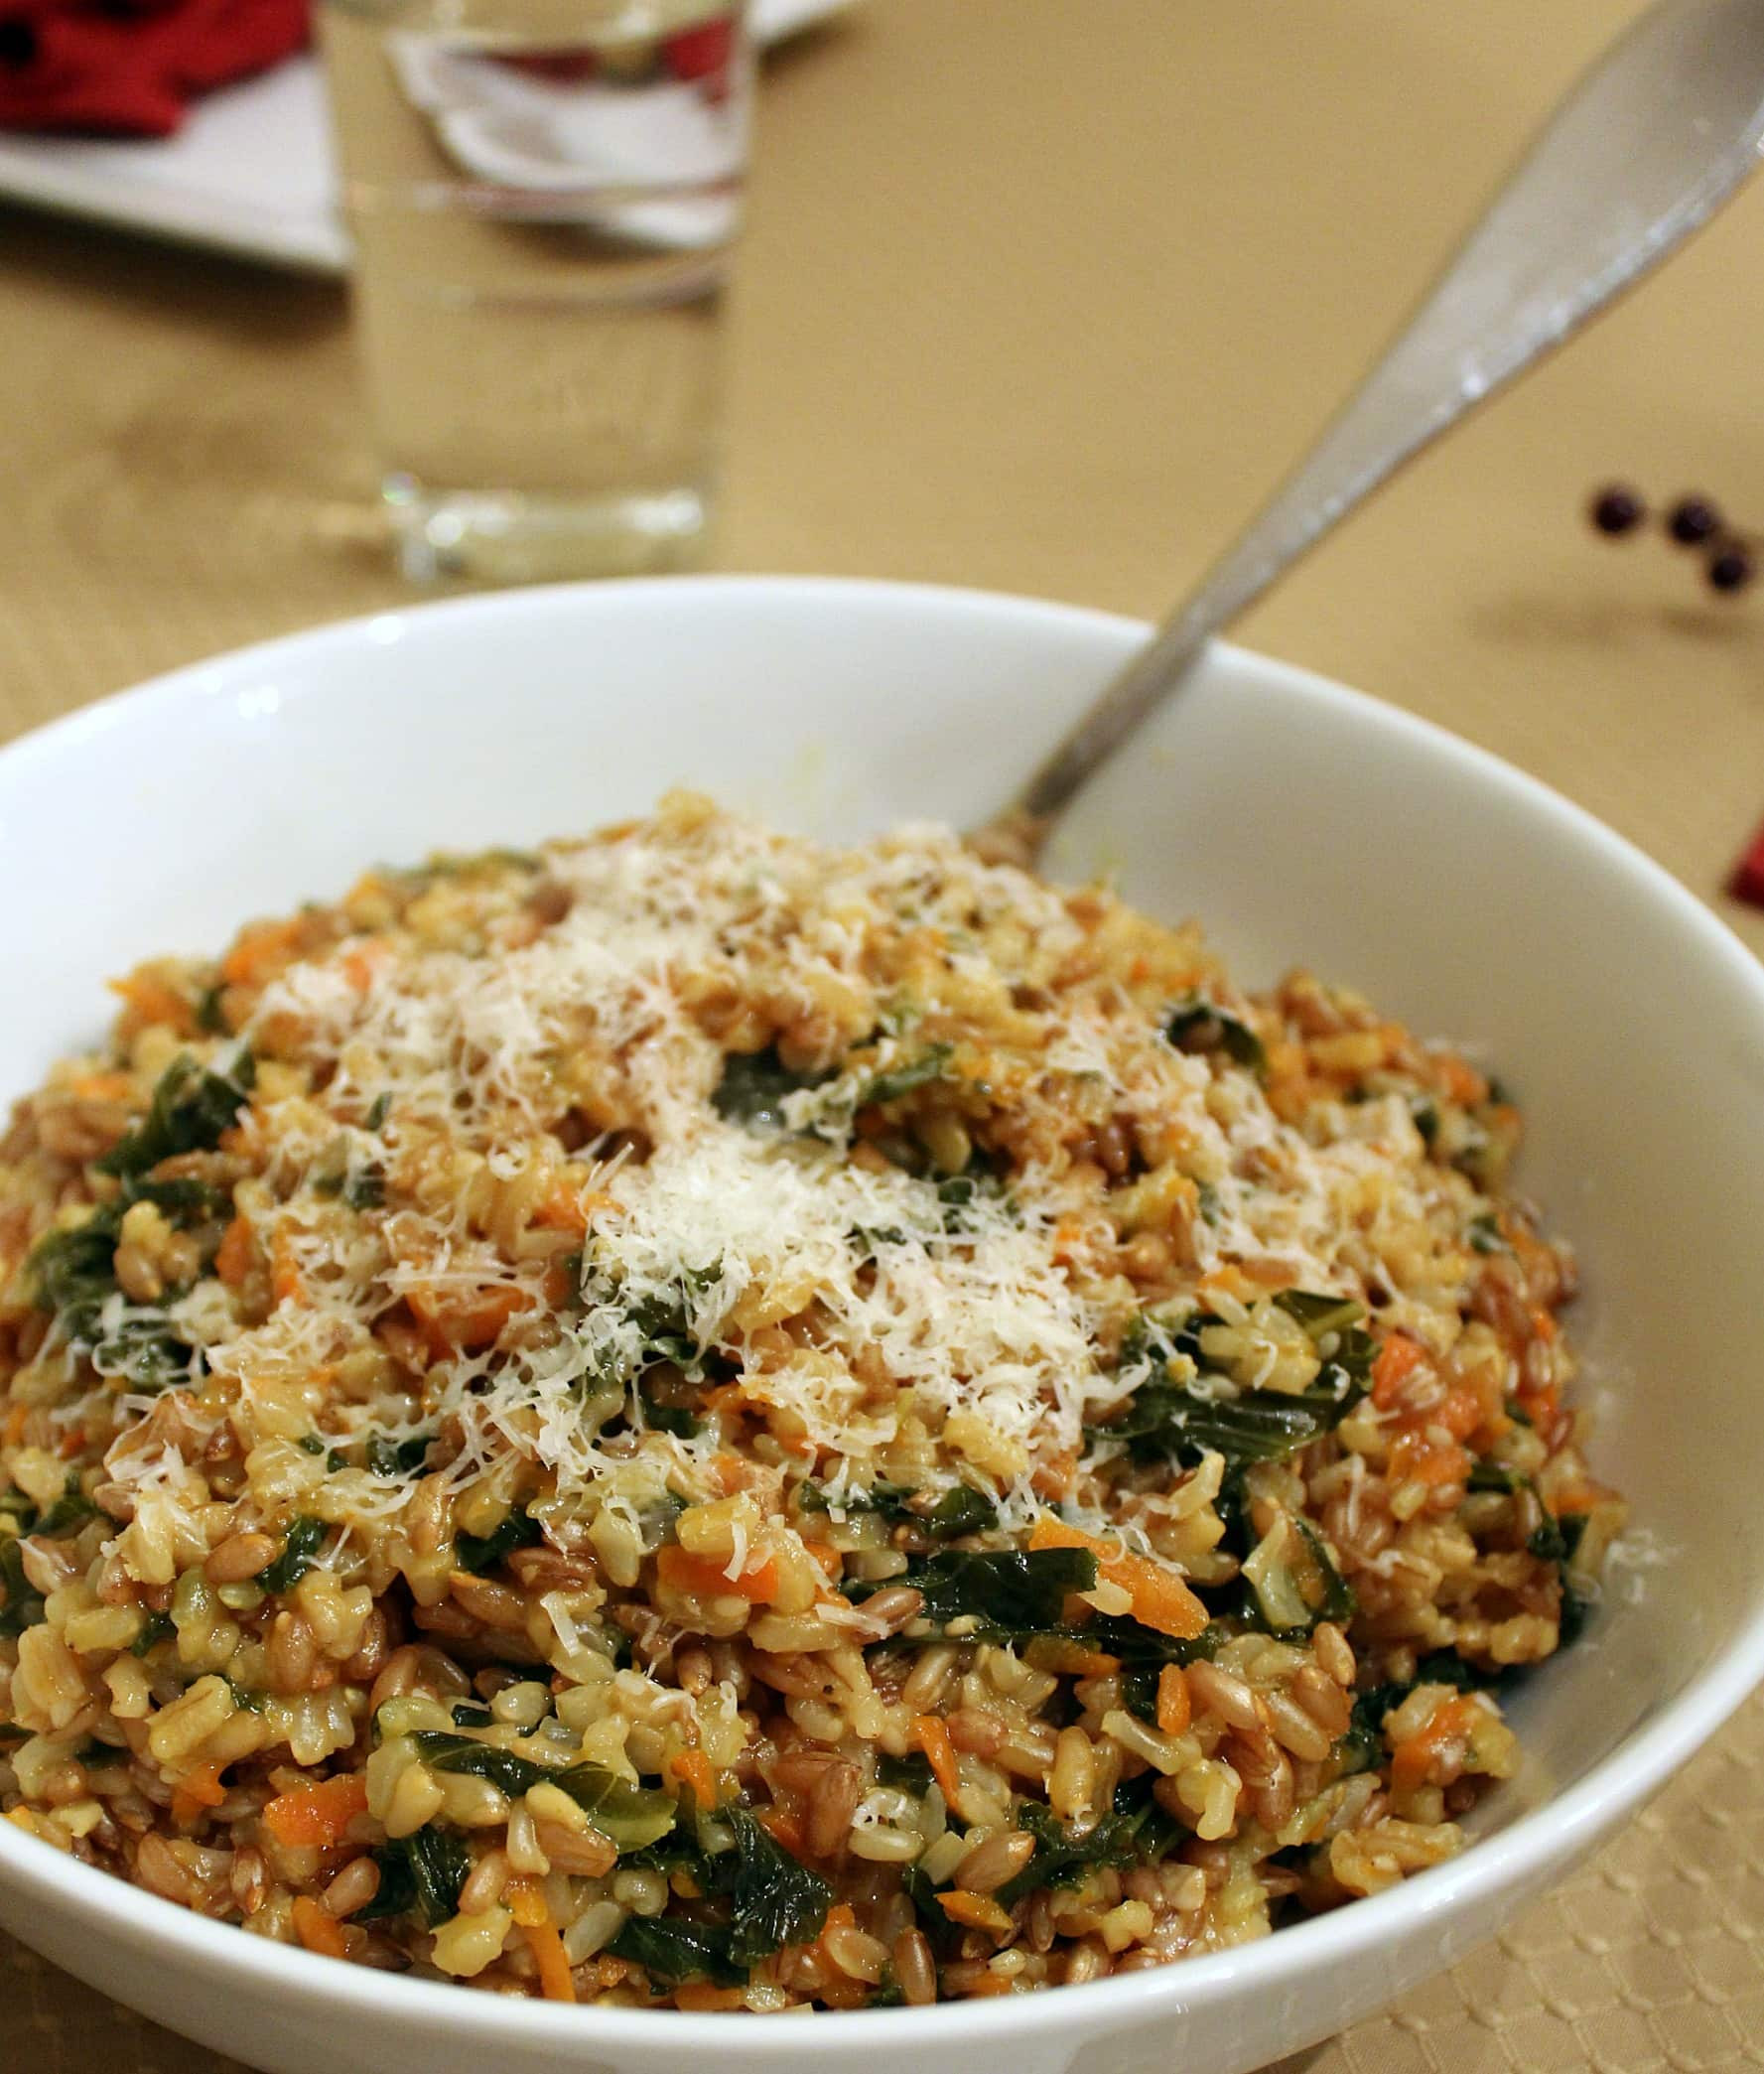 Healthy Risotto Recipes  Healthy New Year Whole Grain Risotto with Kale and